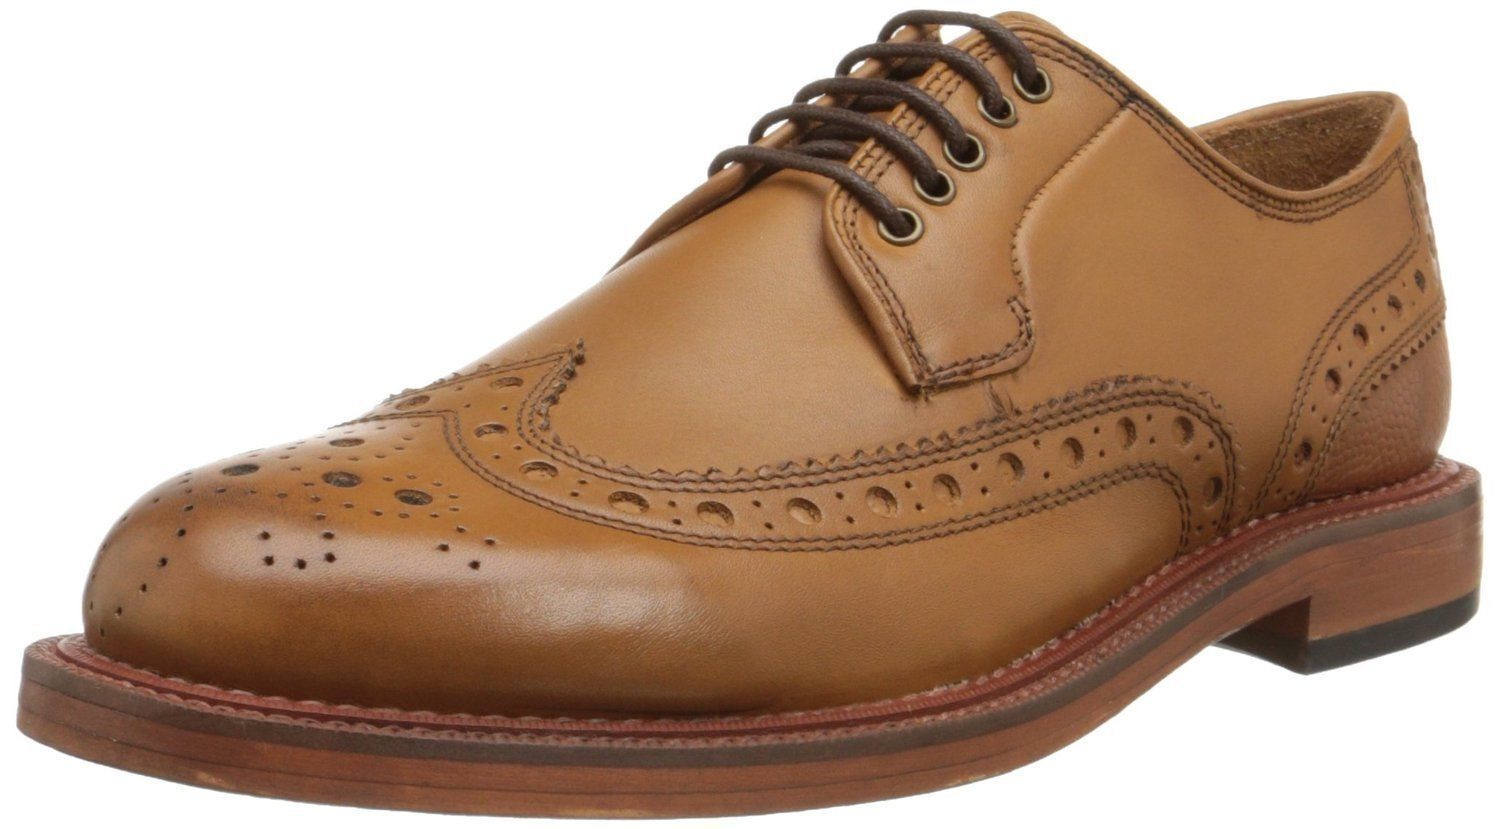 H by HUDSON TAN O'CONNOR MENS SMART LEATHER DERBY BROGUE SHOES BOOTS UK SZ 6-12